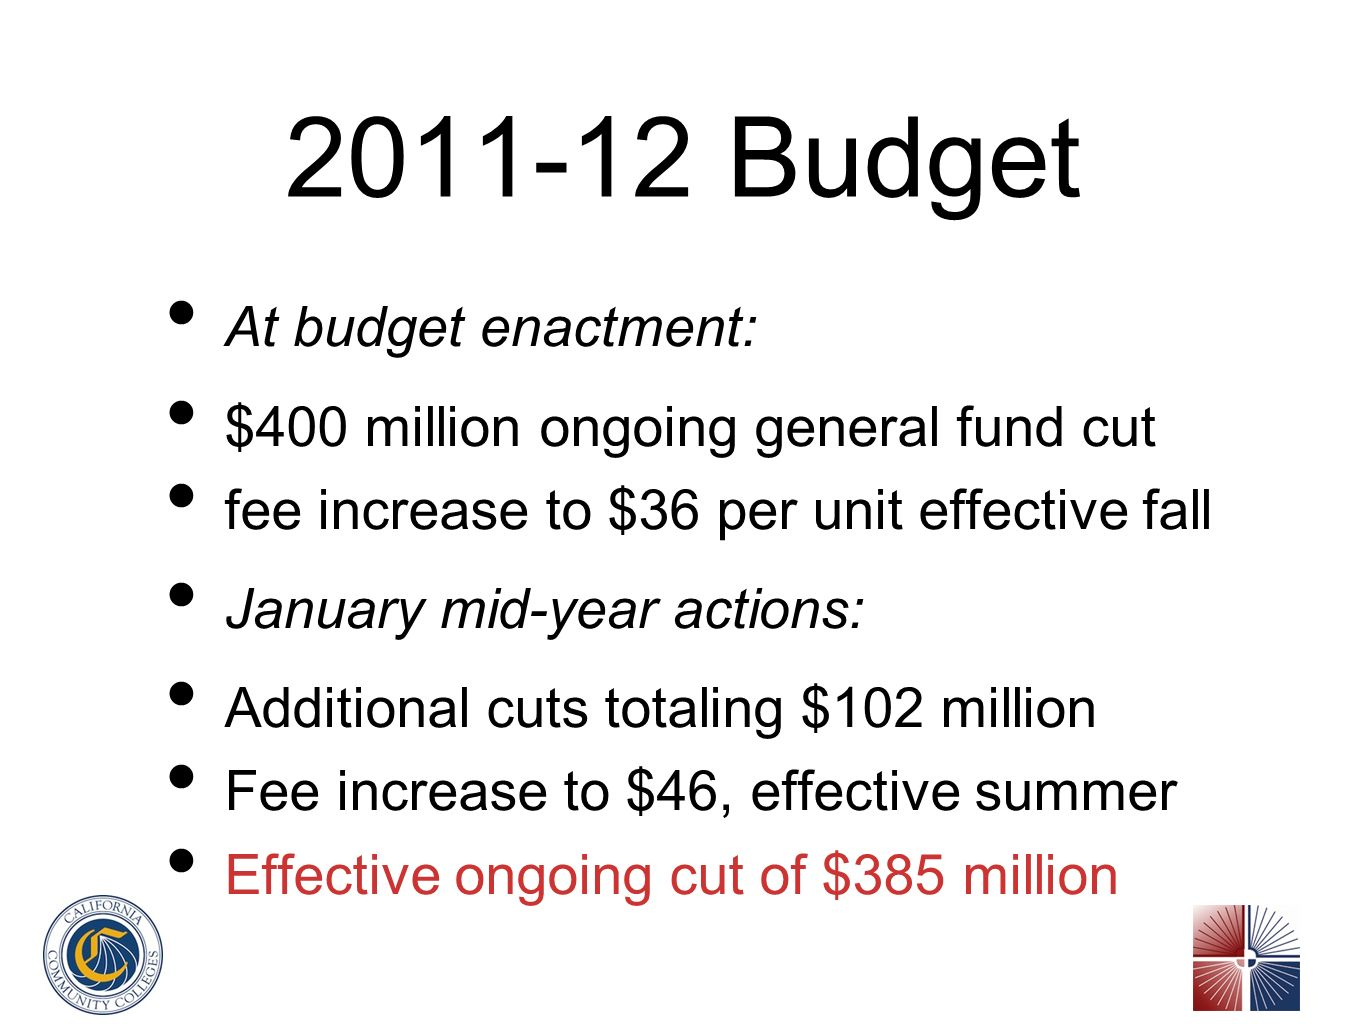 2011-12 Budget At budget enactment: $400 million ongoing general fund cut fee increase to $36 per unit effective fall January mid-year actions: Additional cuts totaling $102 million Fee increase to $46, effective summer Effective ongoing cut of $385 million